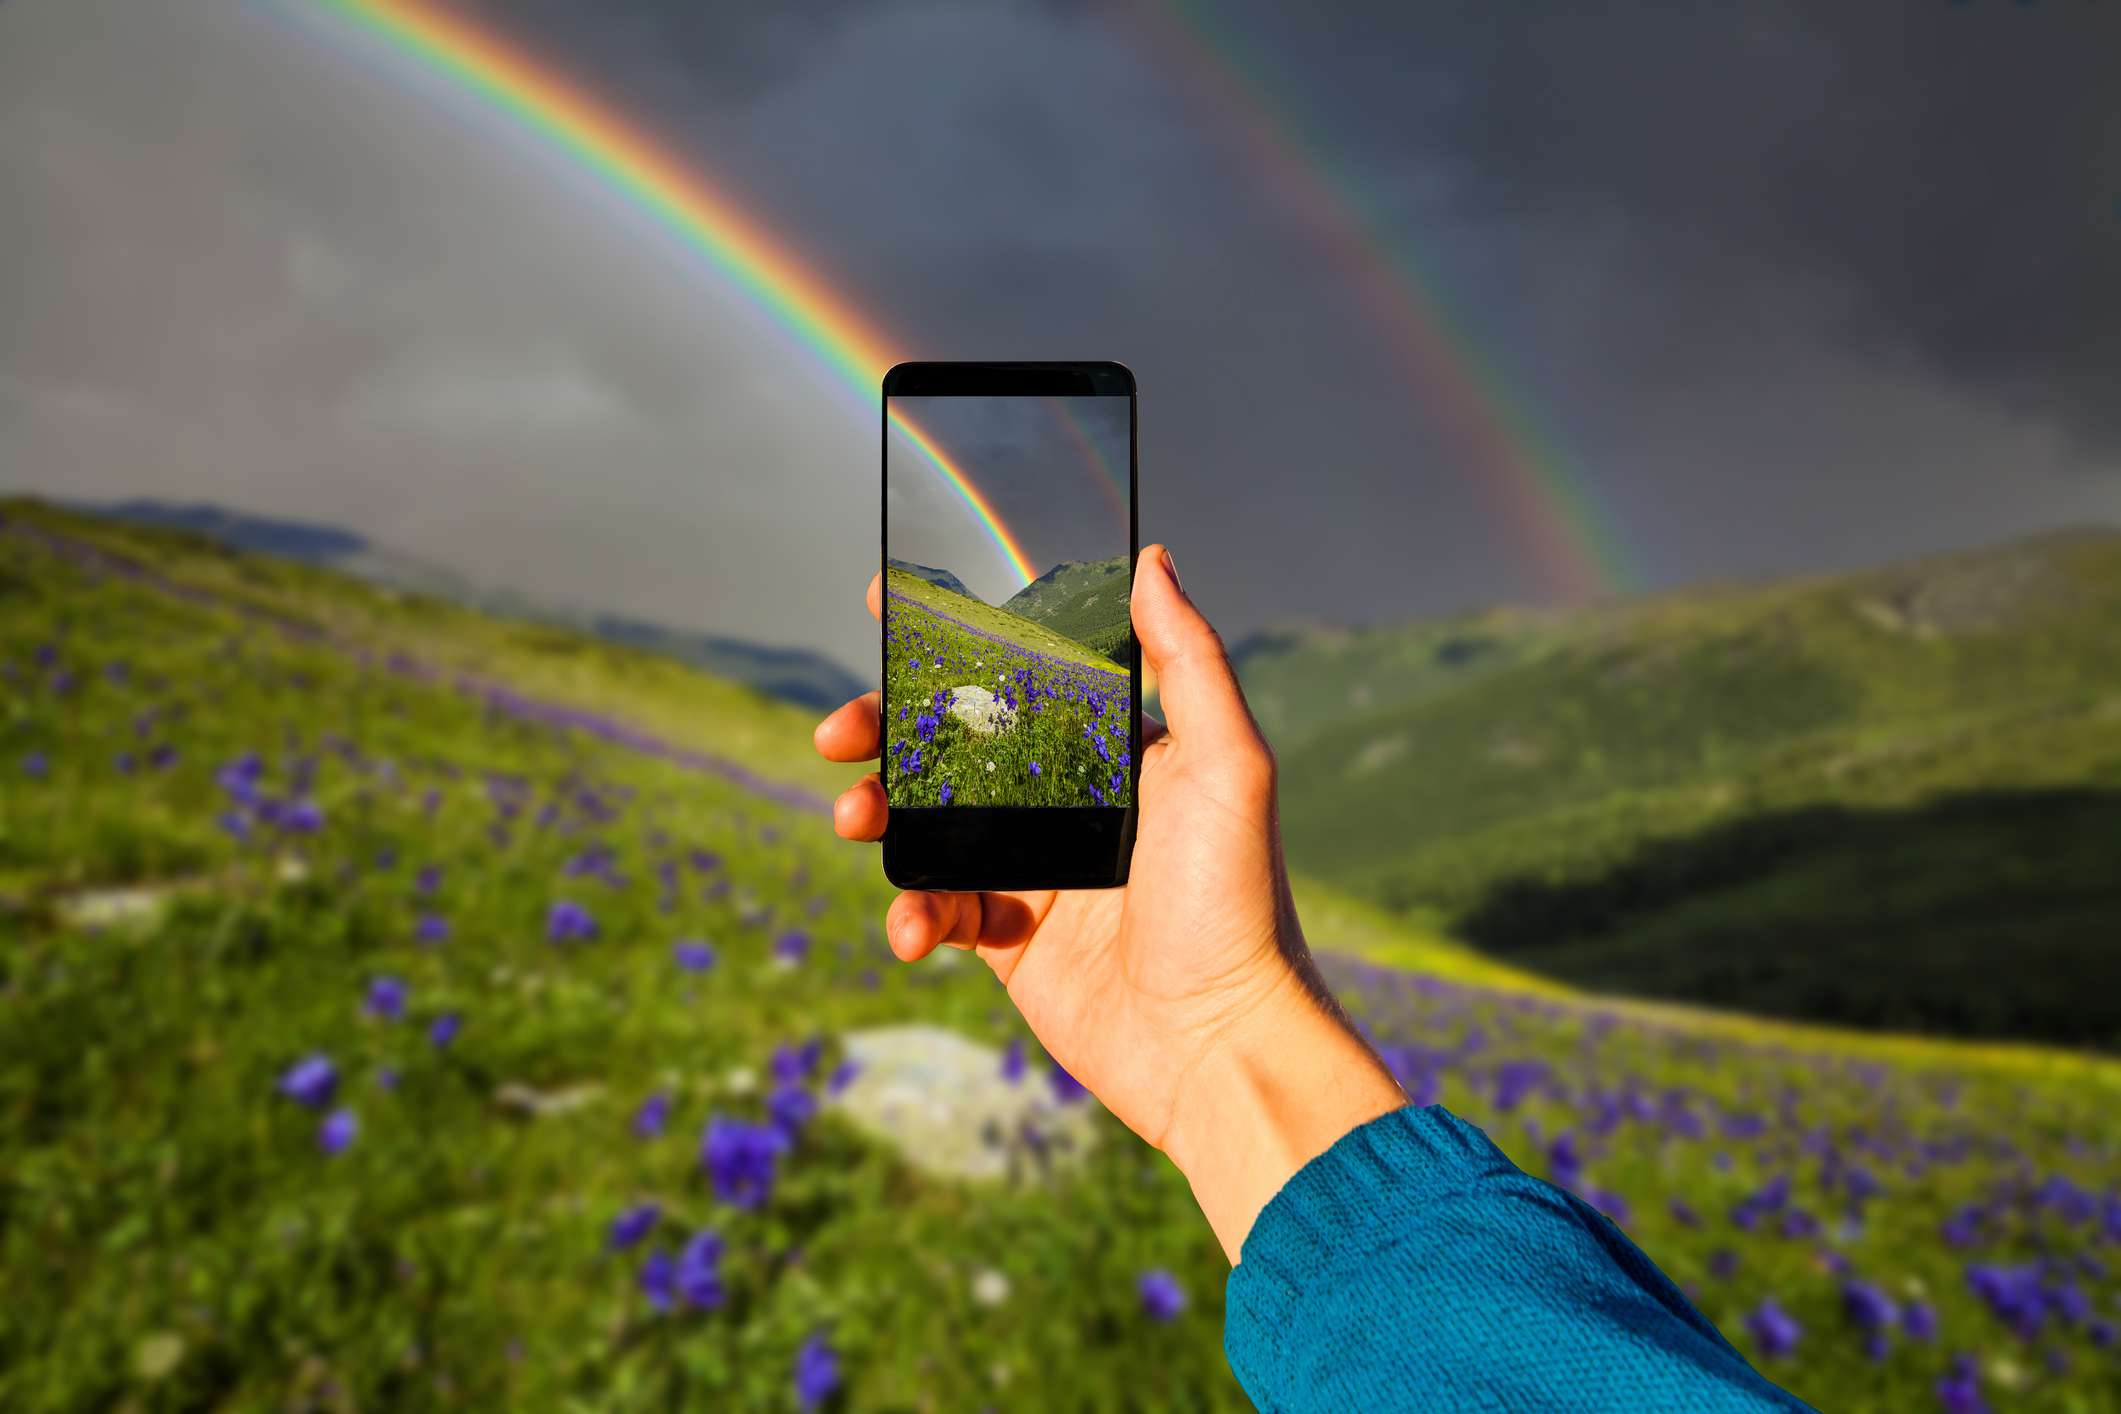 Someone taking a photo of a rainbow against dark clouds on a smartphone.